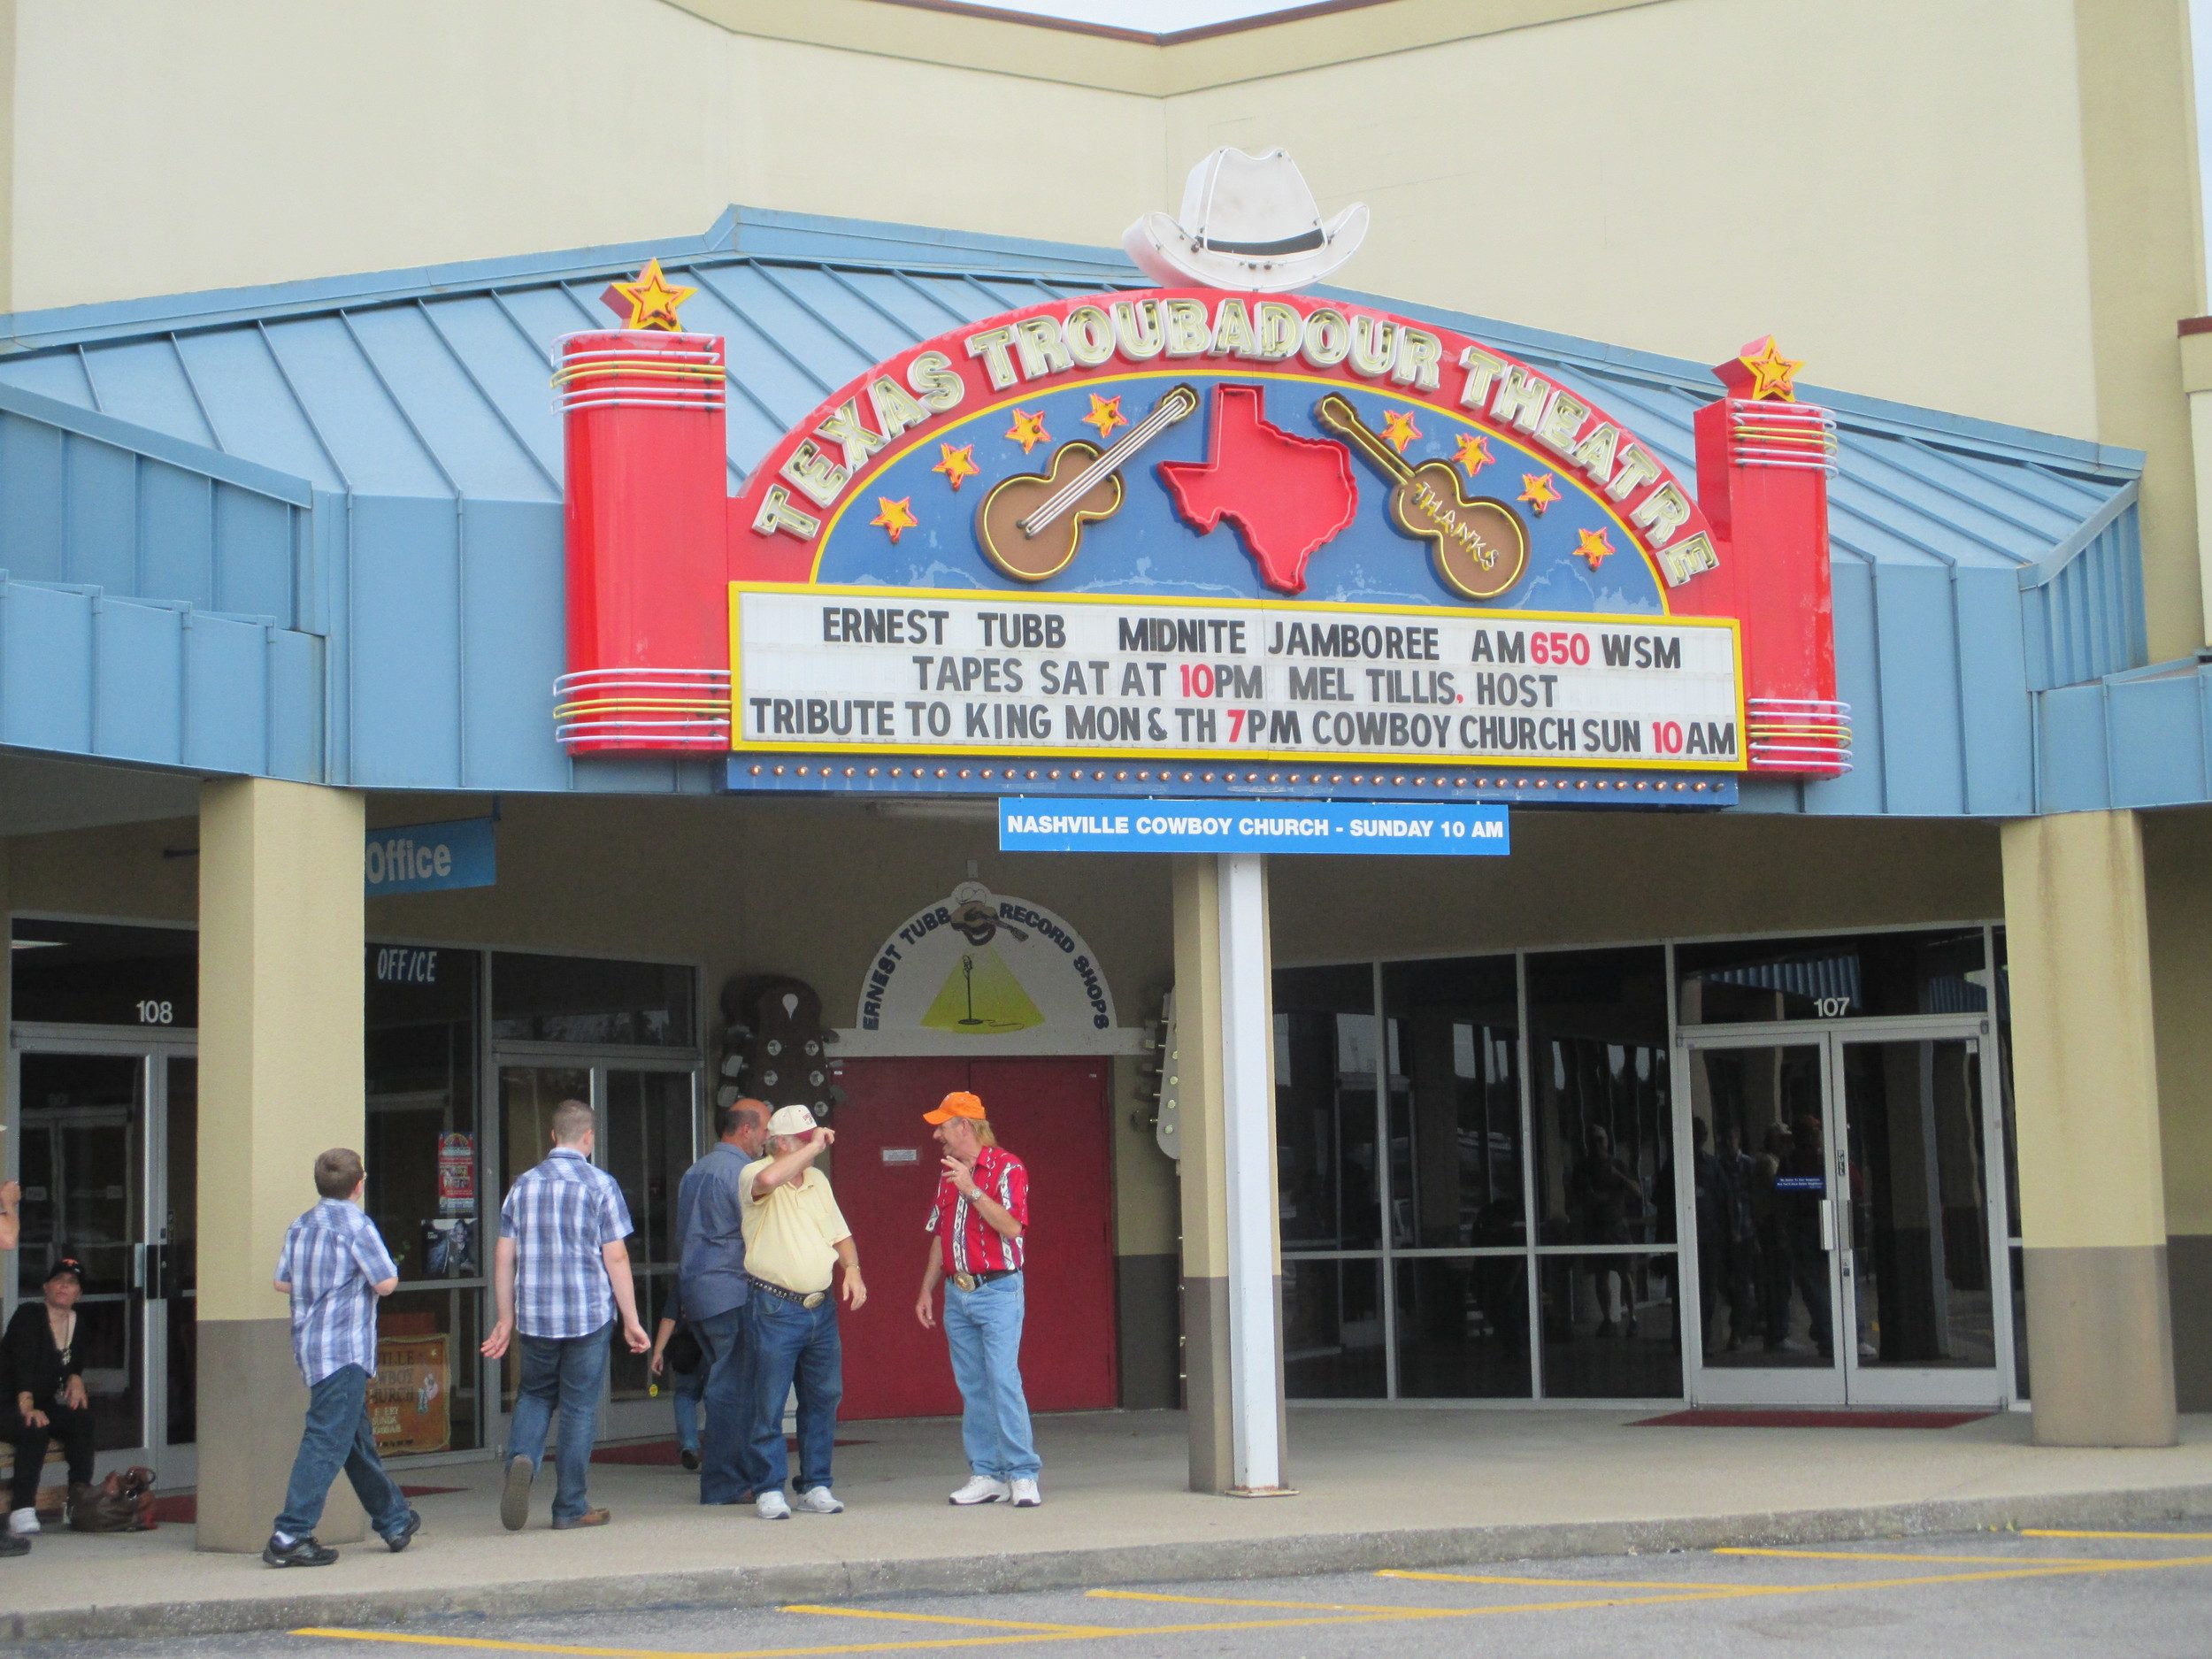 Arriving At the Theater